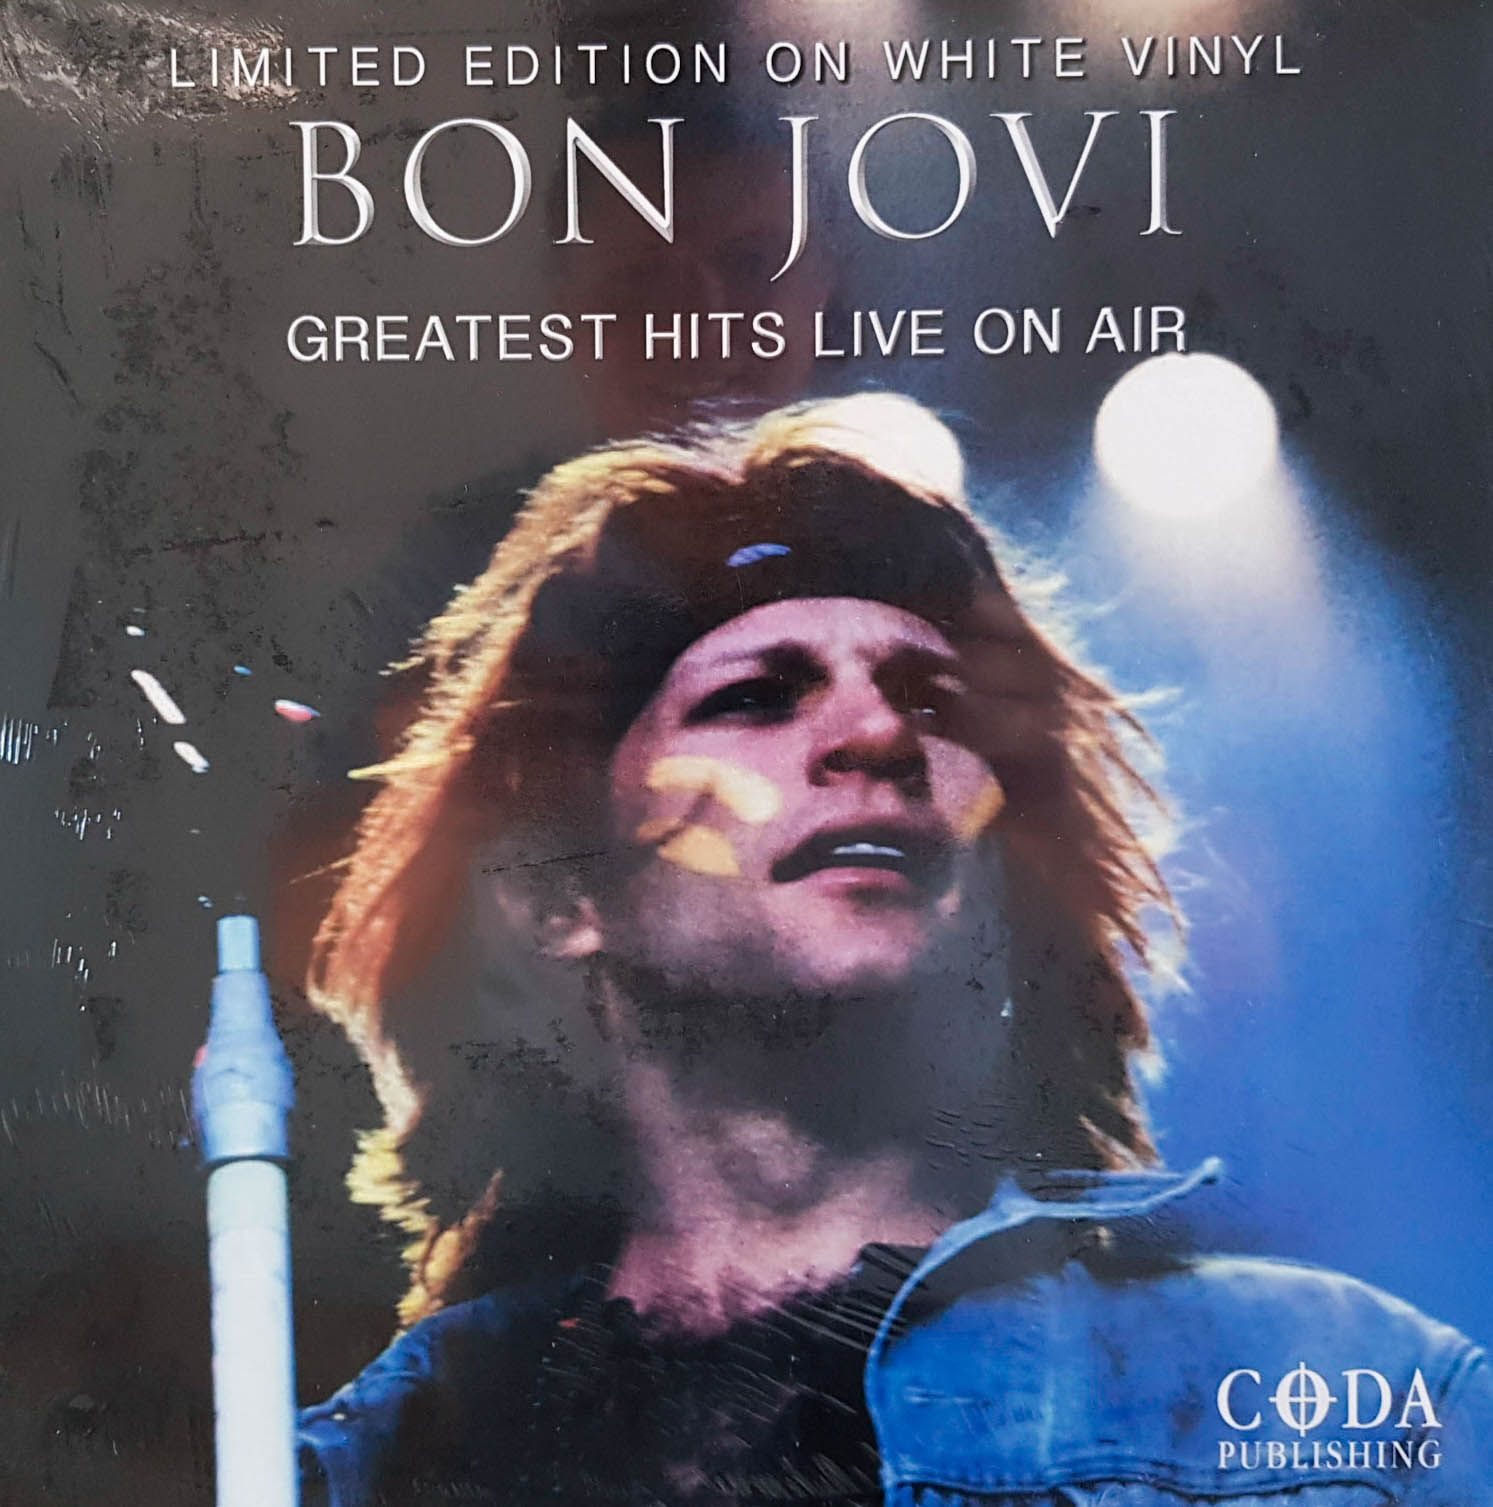 Lp Vinil Bon Jovi Greatest Hits Live On Air